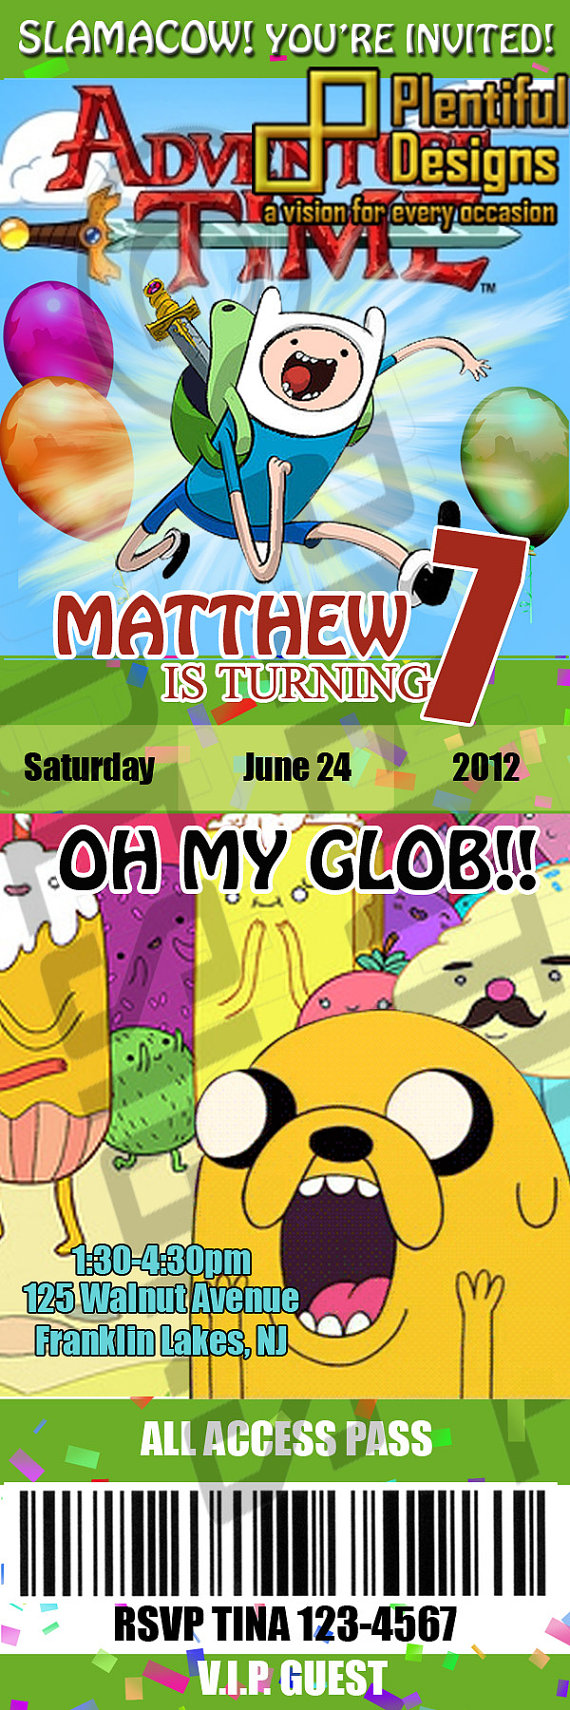 personalized party invites: adventure time. SO Making these for my ...